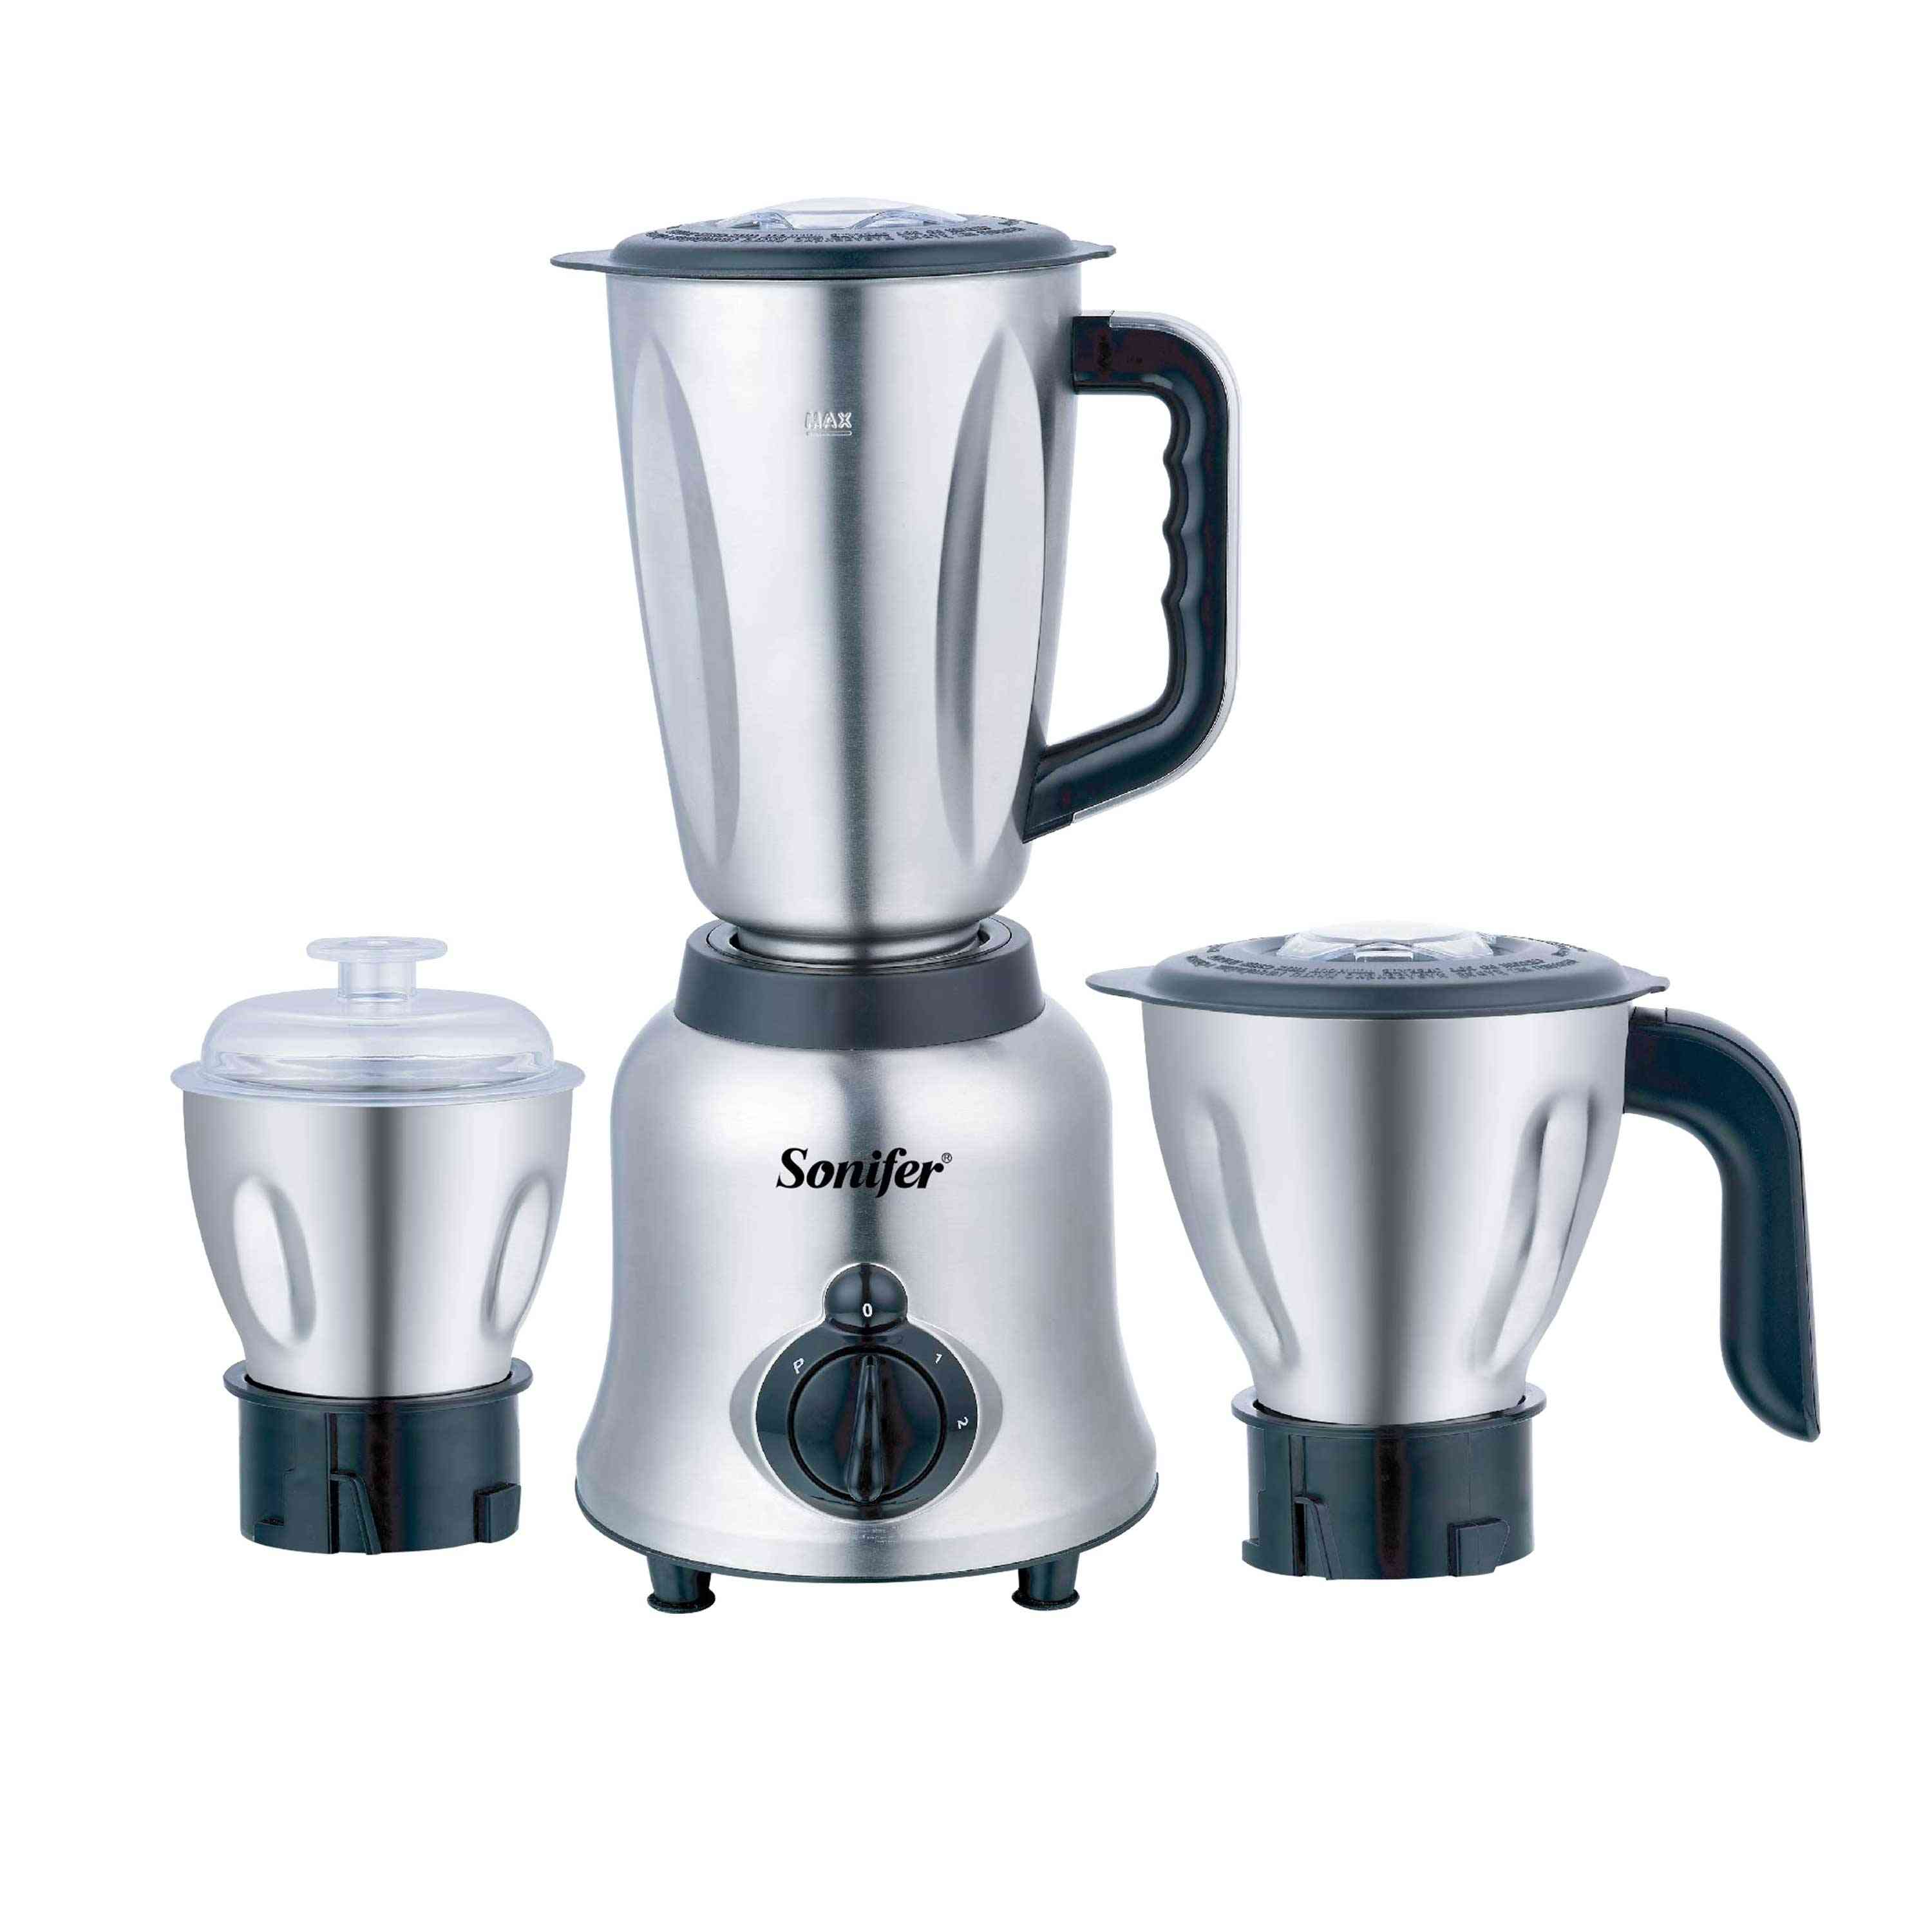 3-in-1 Stainless Steel- Baby Food Maker, Meat Grinder Mixers